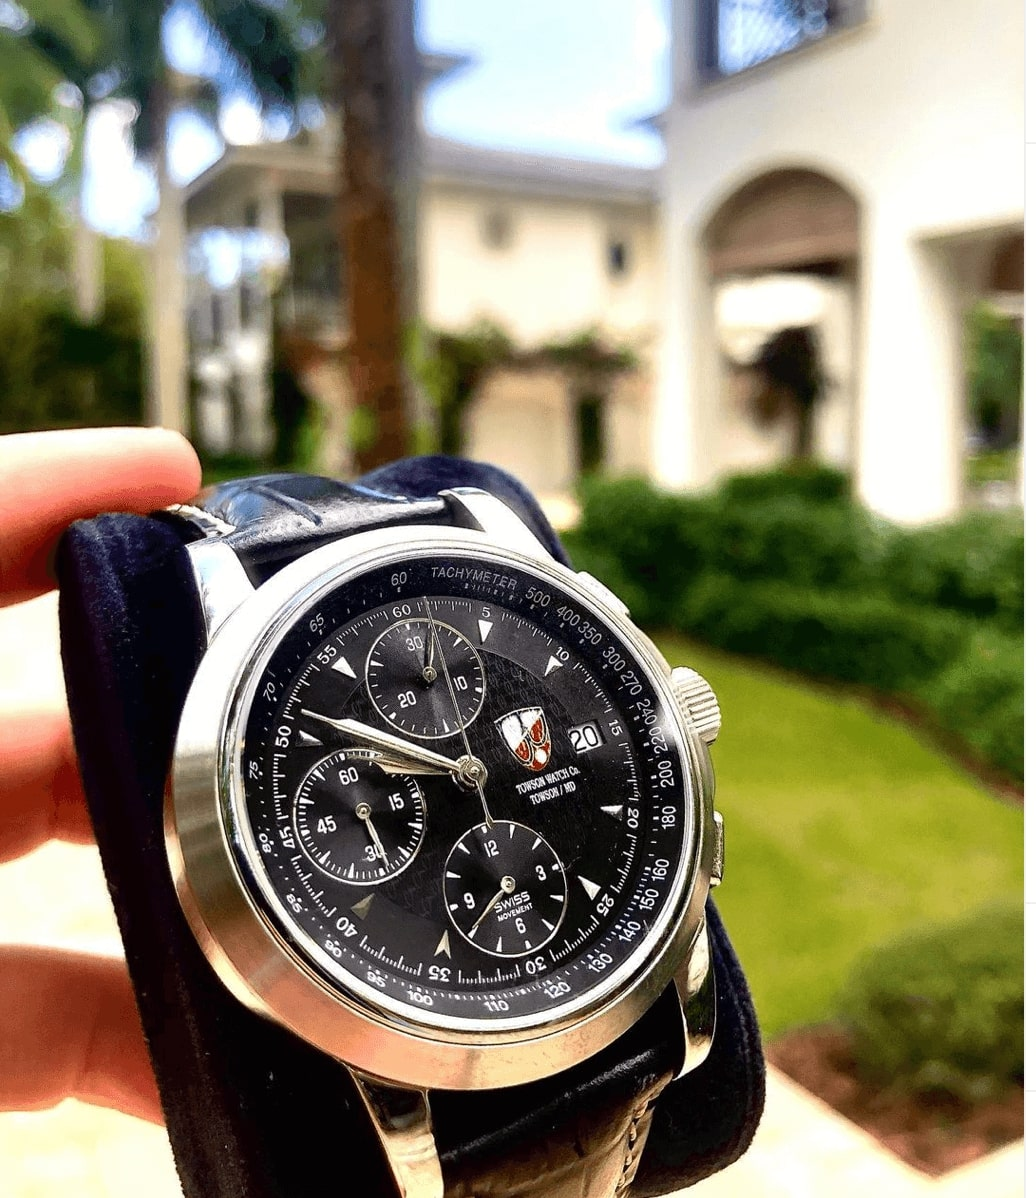 A Towson watch with black band and black dial.